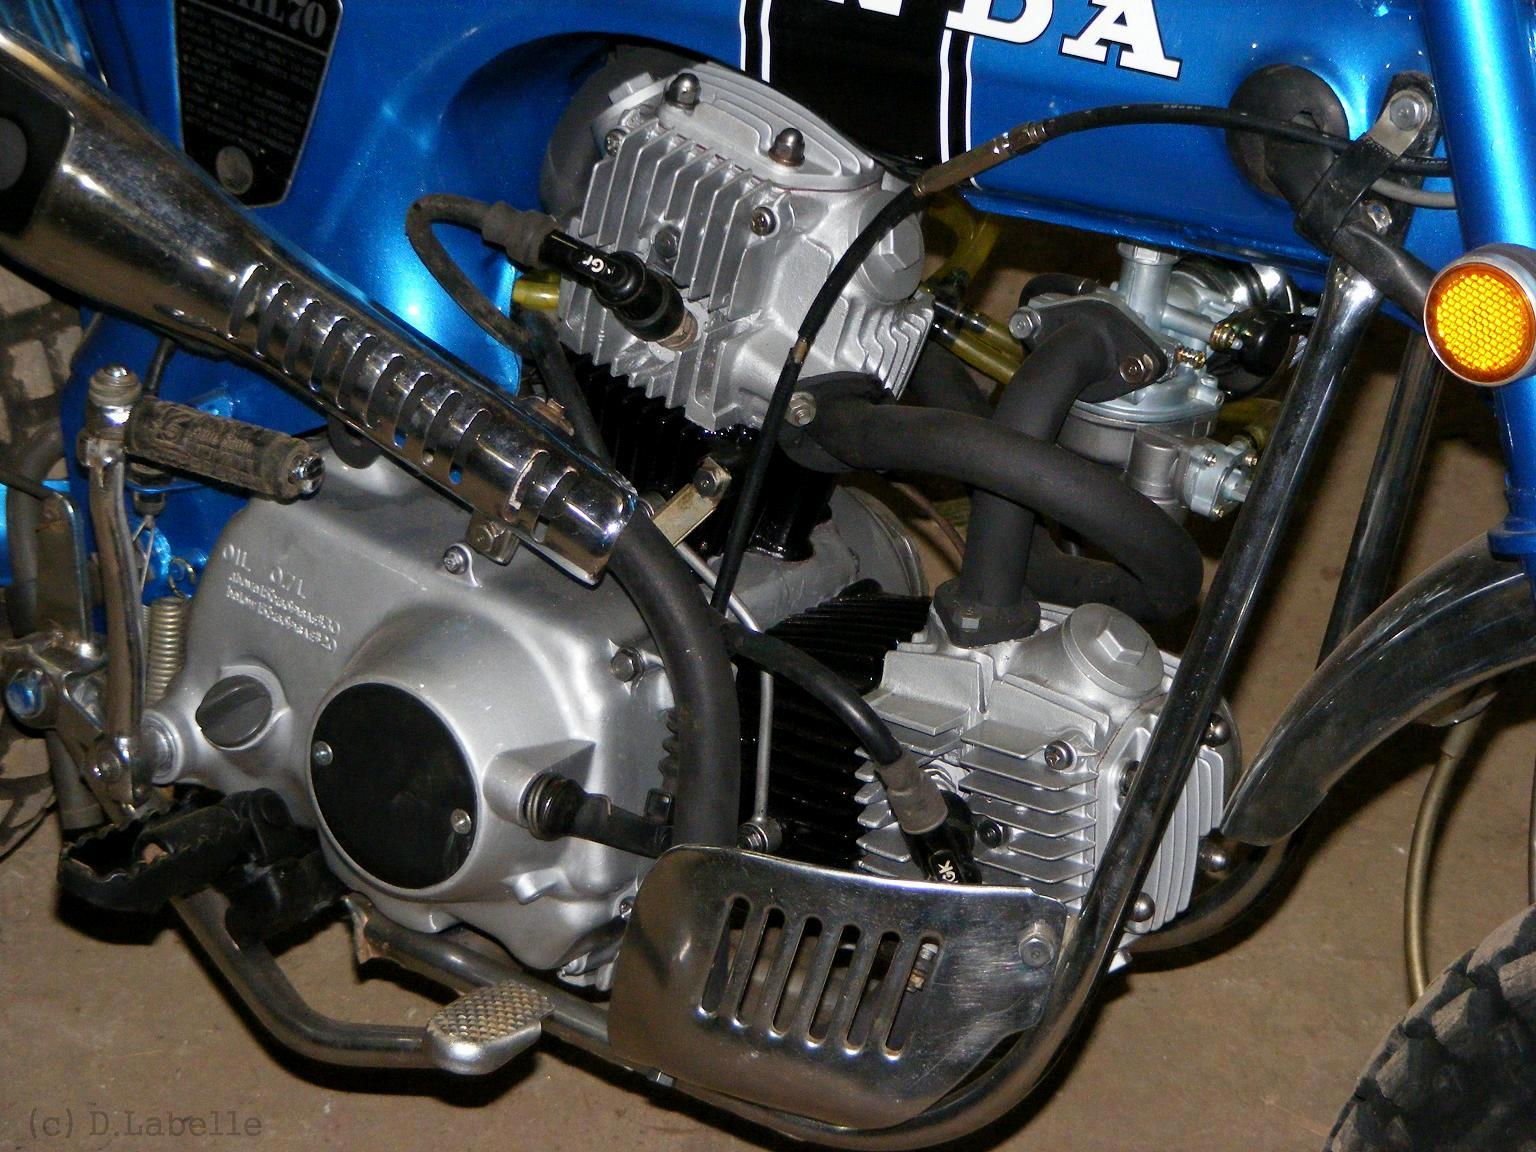 Harley Davidson Twin Cam Engine Diagram Parts List Wiring Motorcycle V Honda Engines Get Free Motor